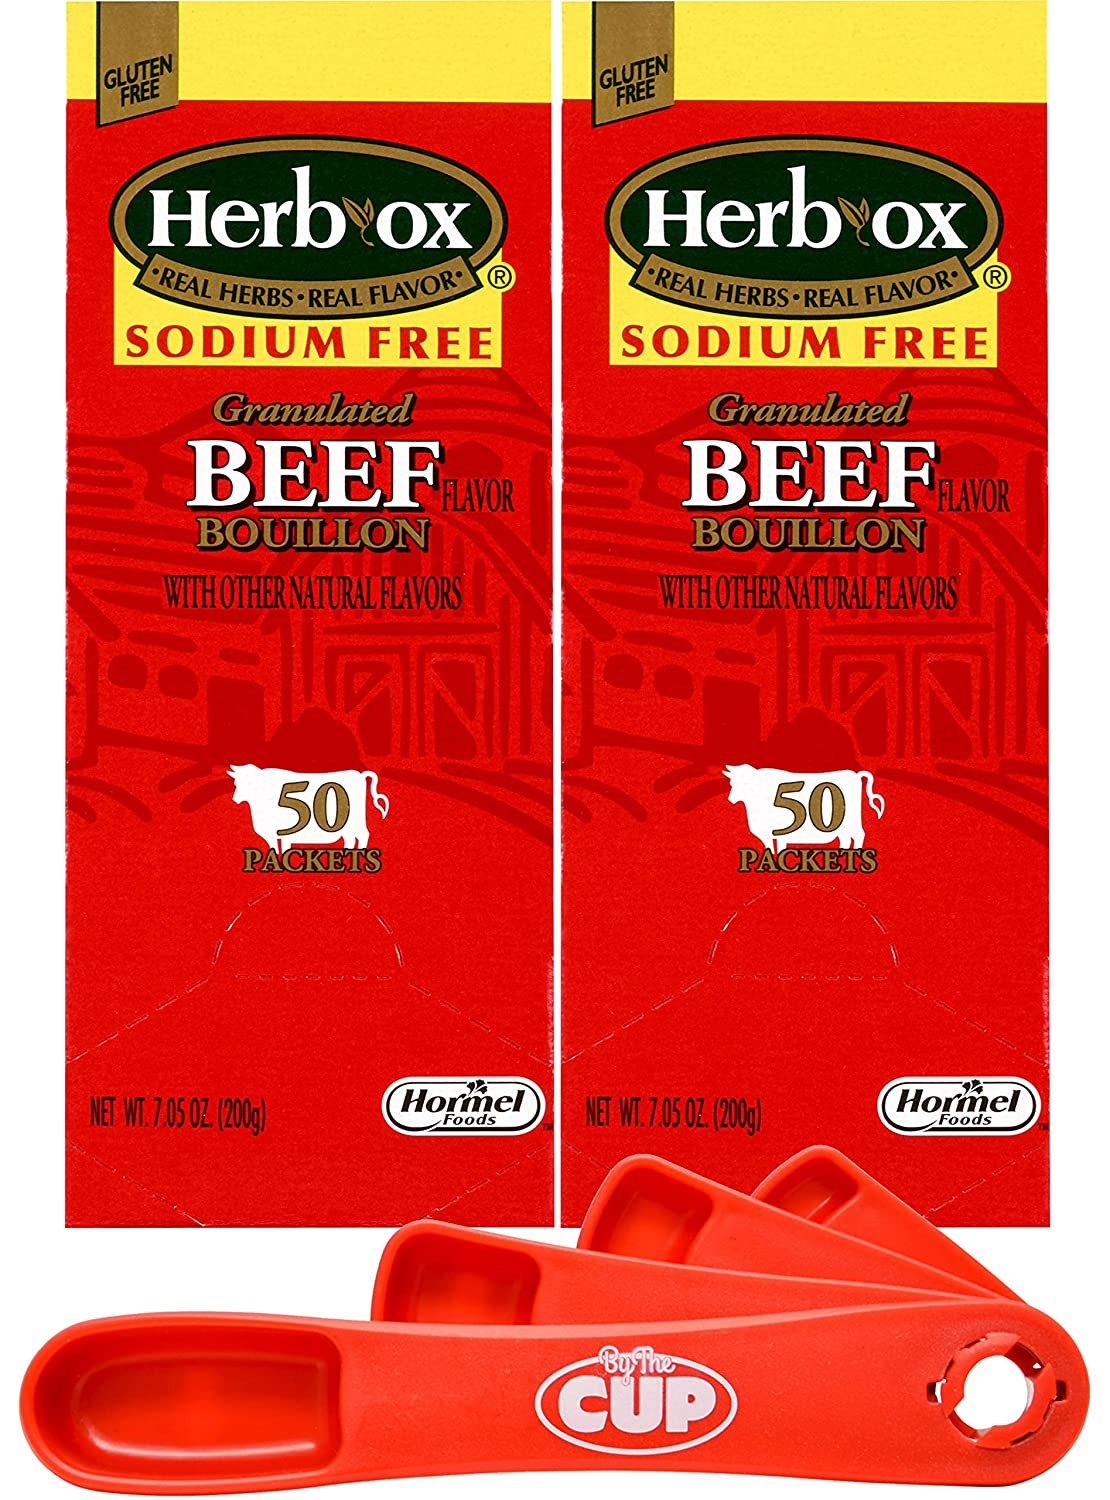 Herb-Ox Dallas Mall Granulated Sodium-Free Beef Flavor Pack Bouillon Columbus Mall of 2